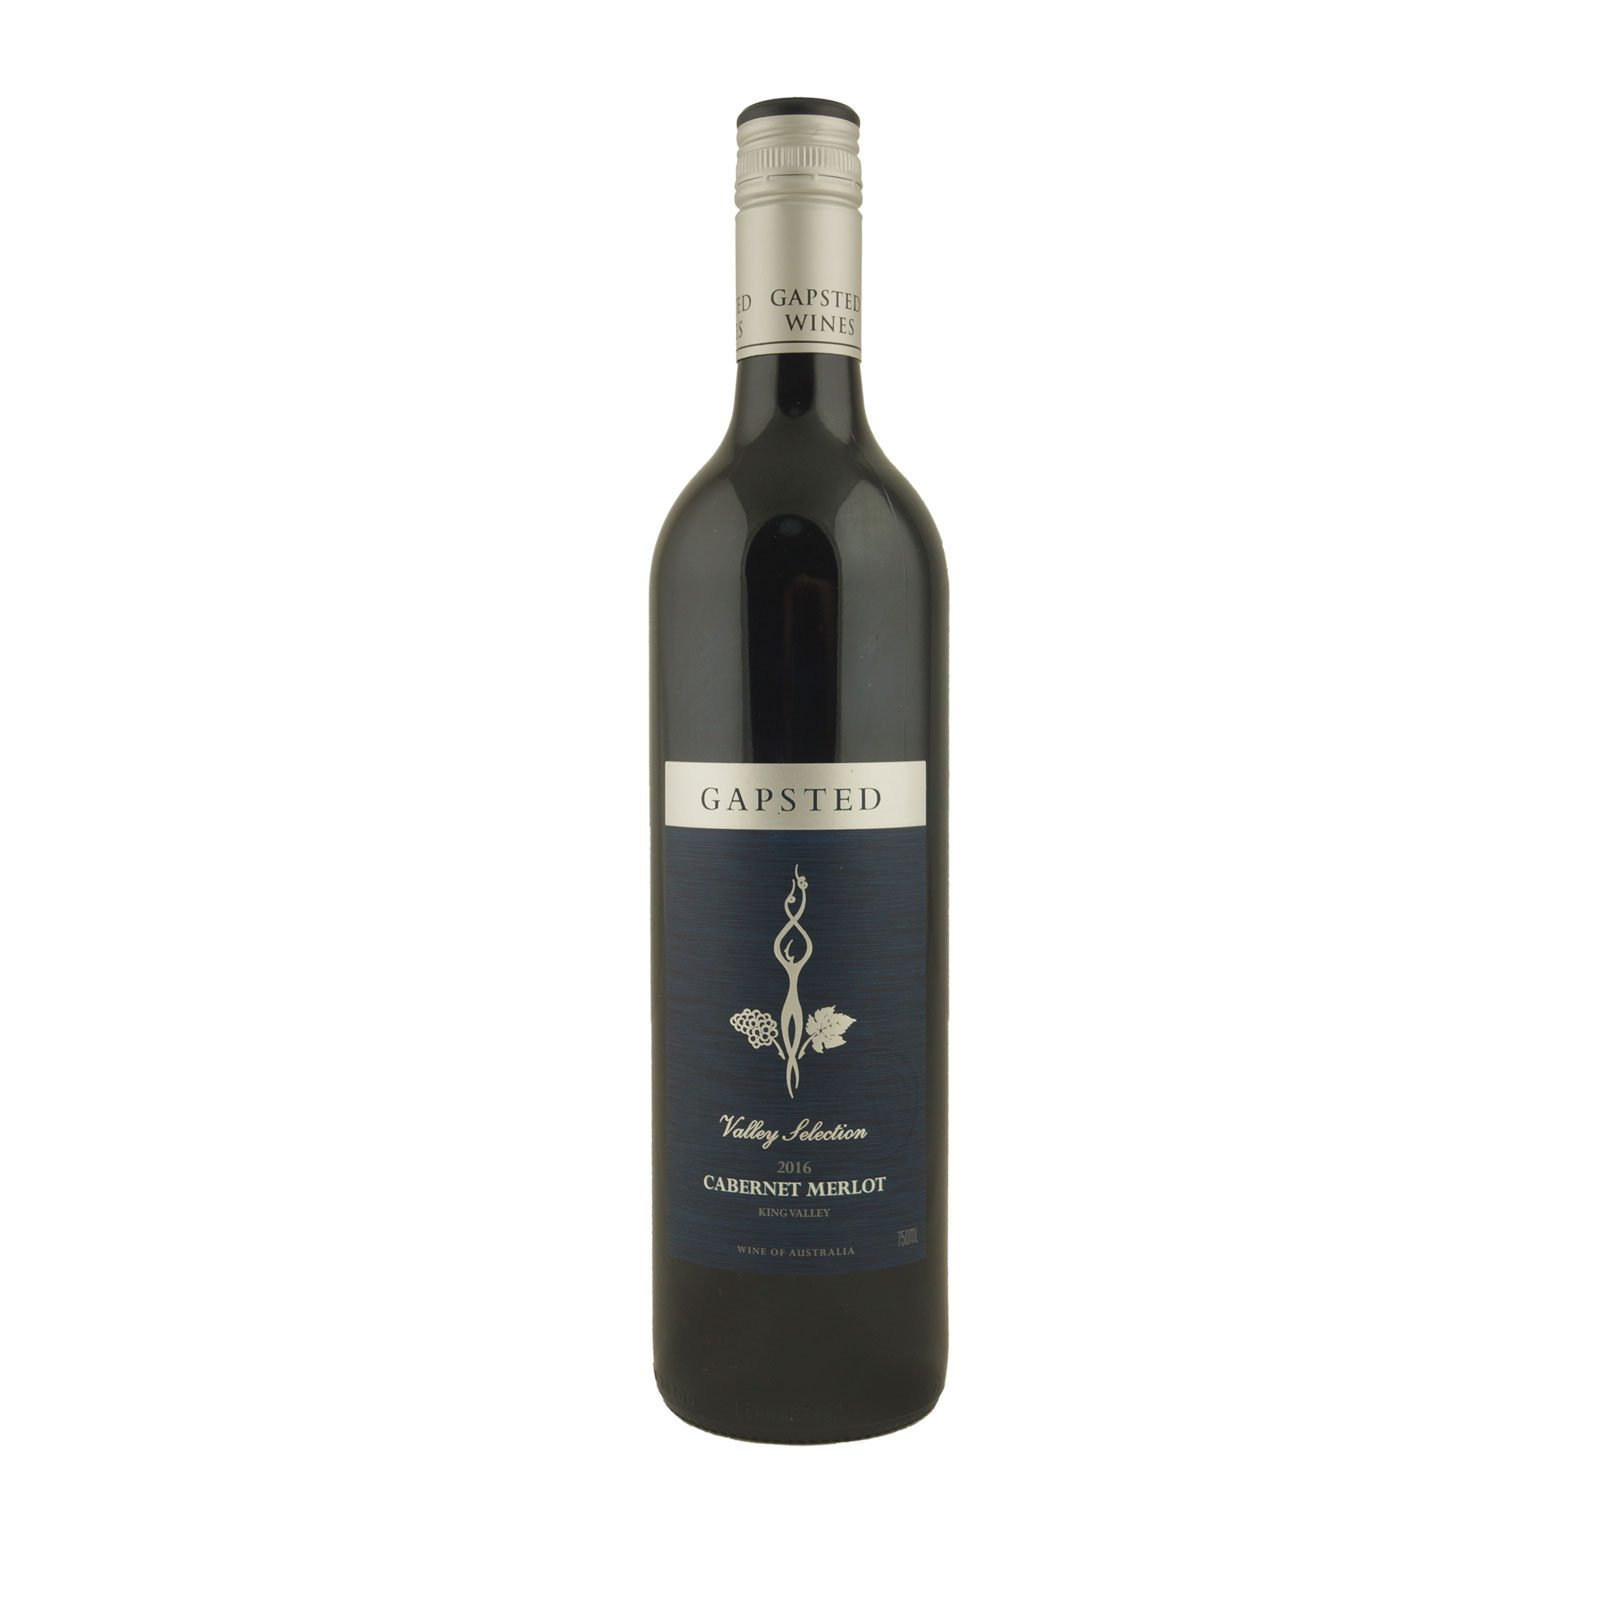 products-gapsted-cabernet-merlot-2016-a